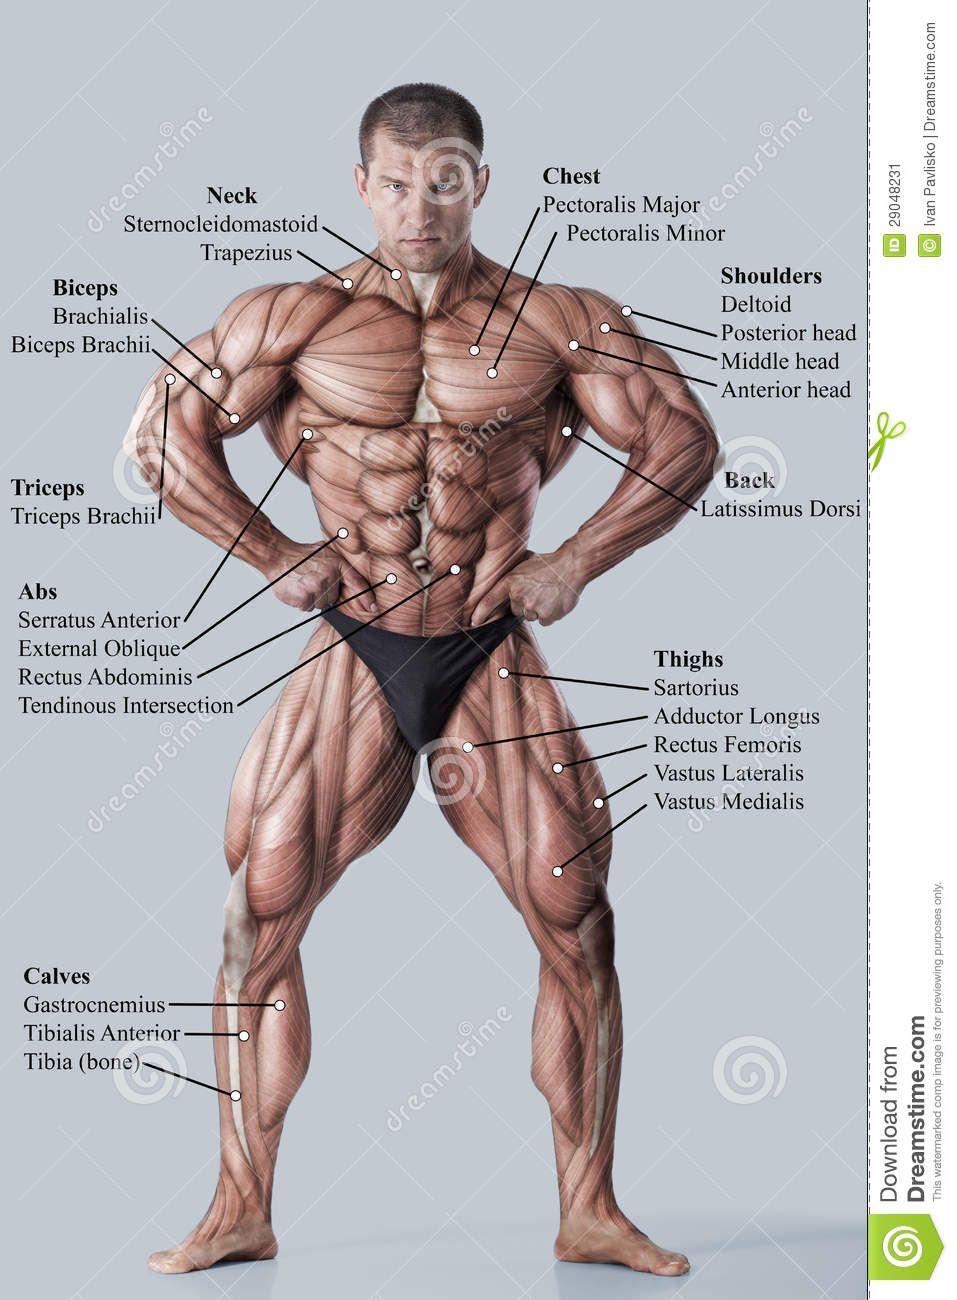 Anatomy of male muscular system | Скульптура. Анатомия. | Pinterest ...